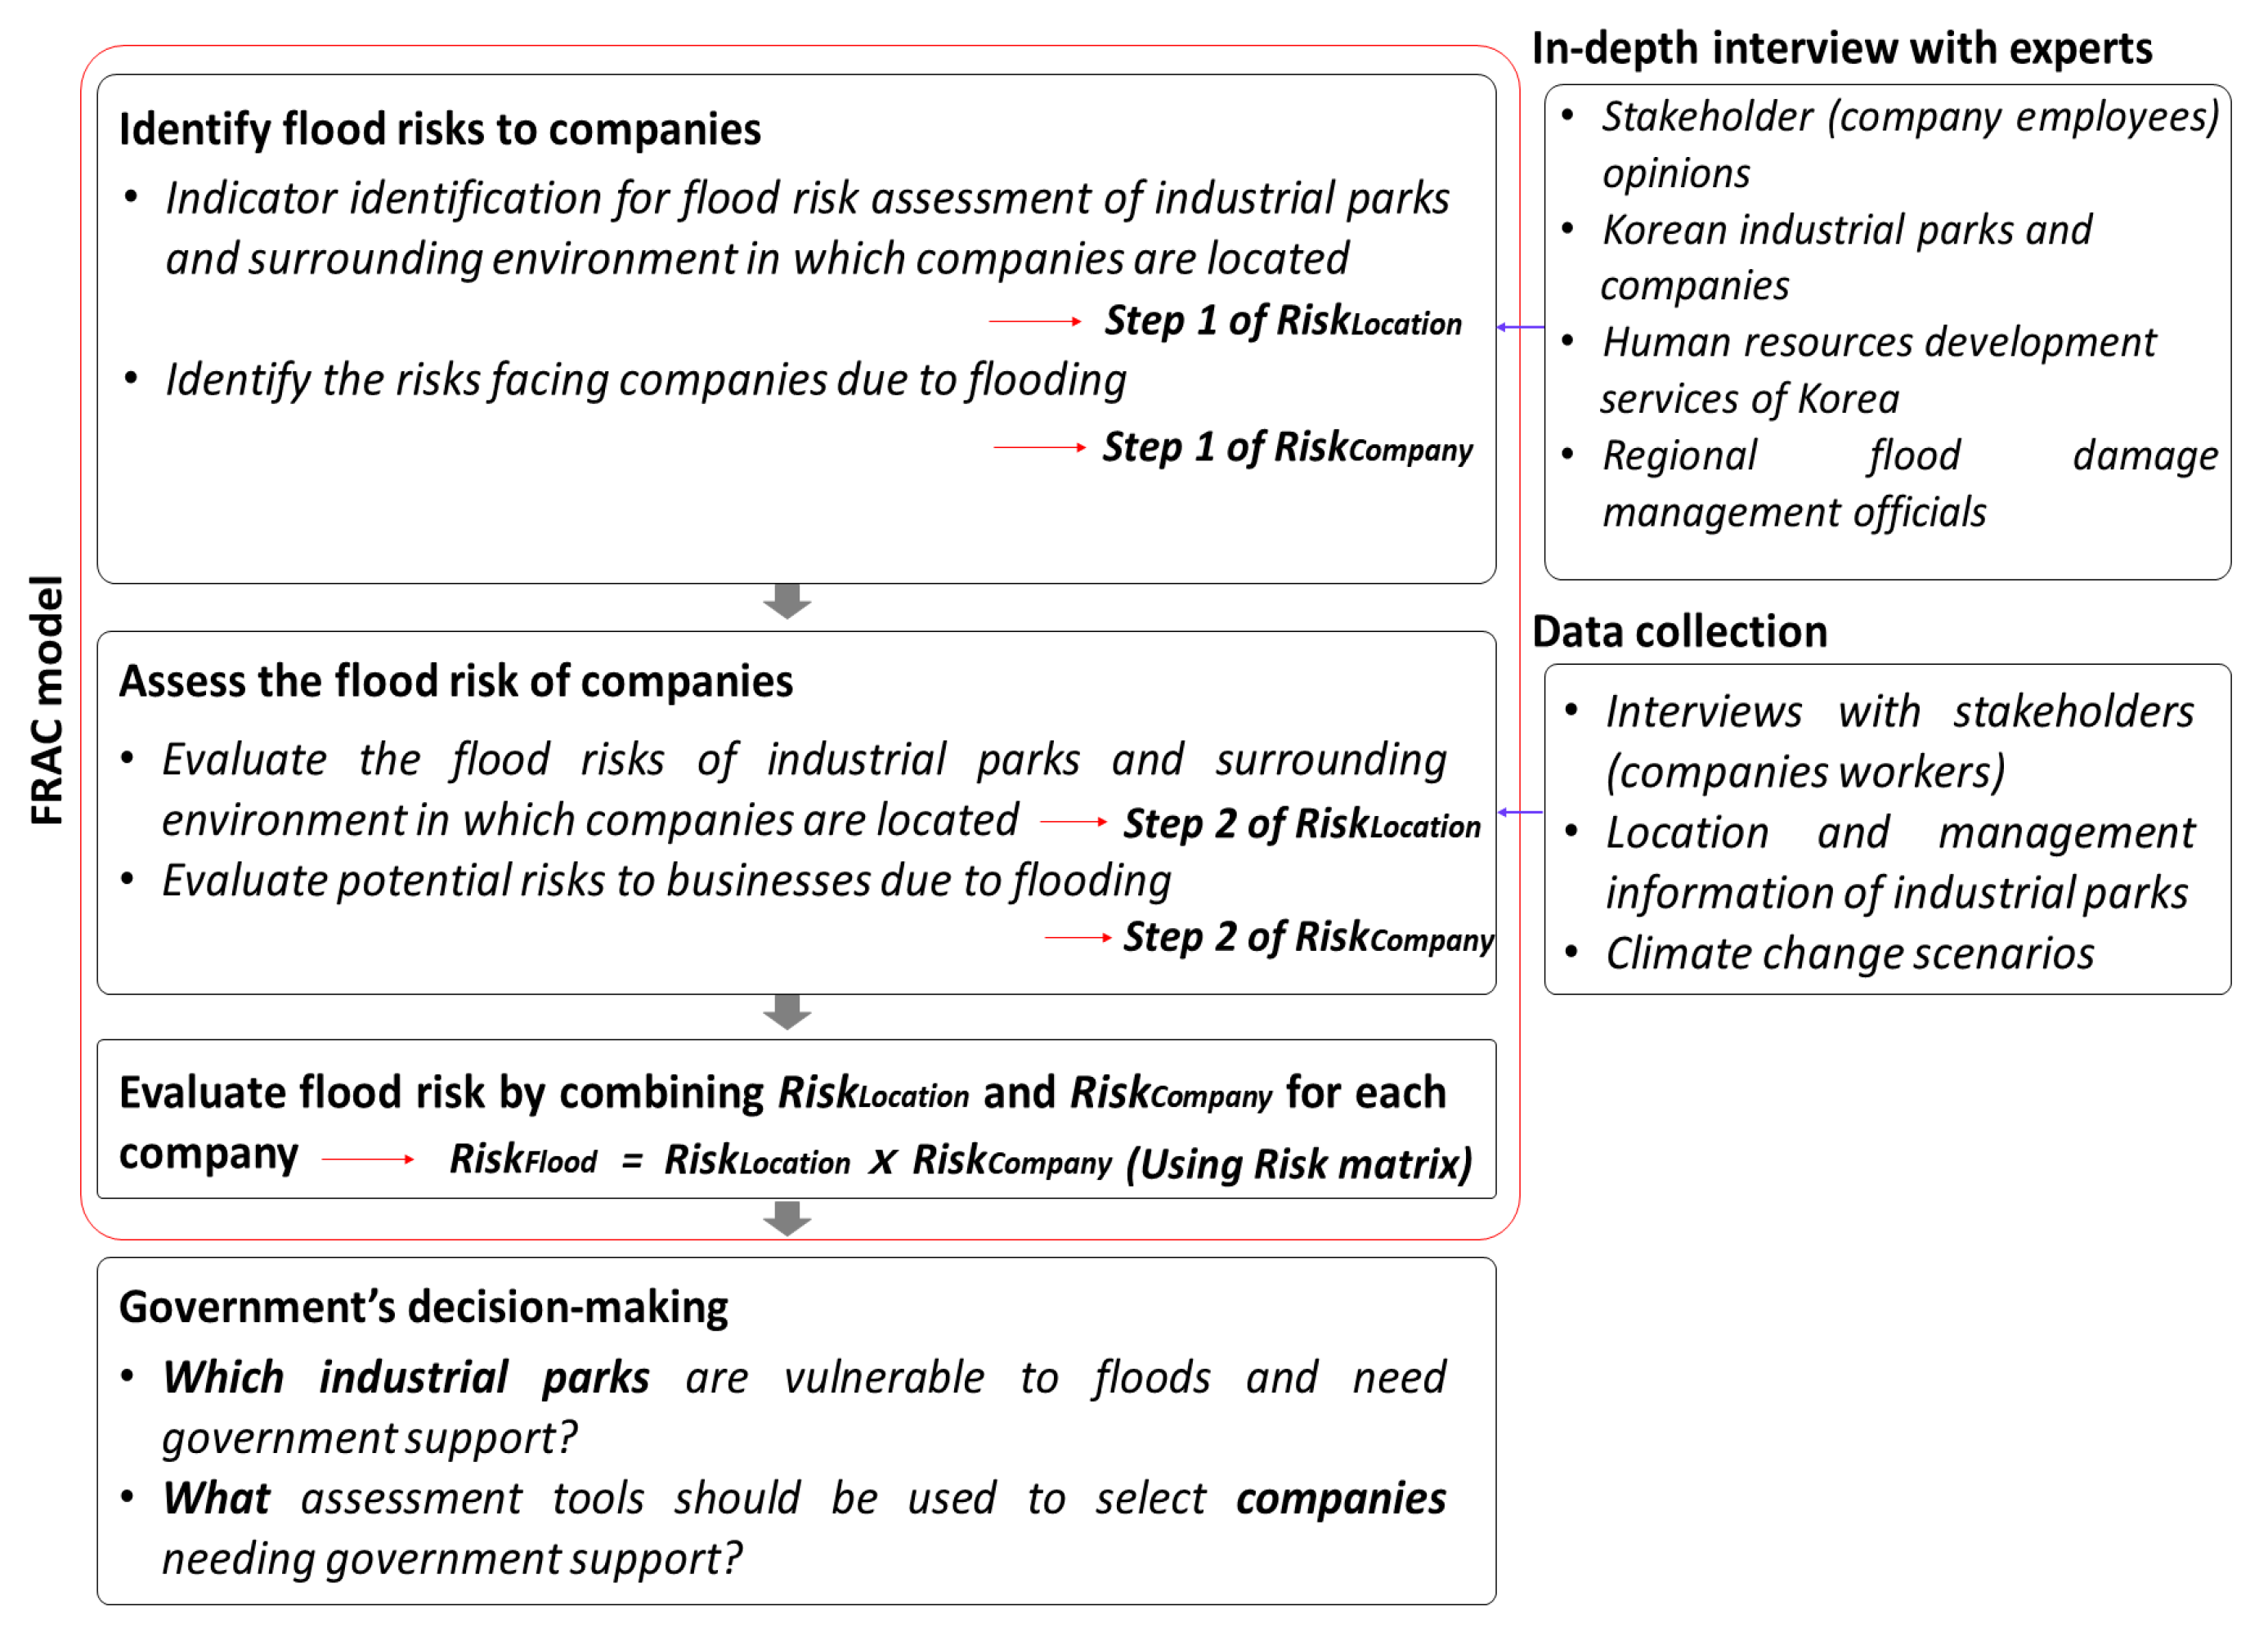 risk assessment tools in decision making The use of risk assessment tools has increased considerably within  risk  assessment tools as part of the parole decision-making process.